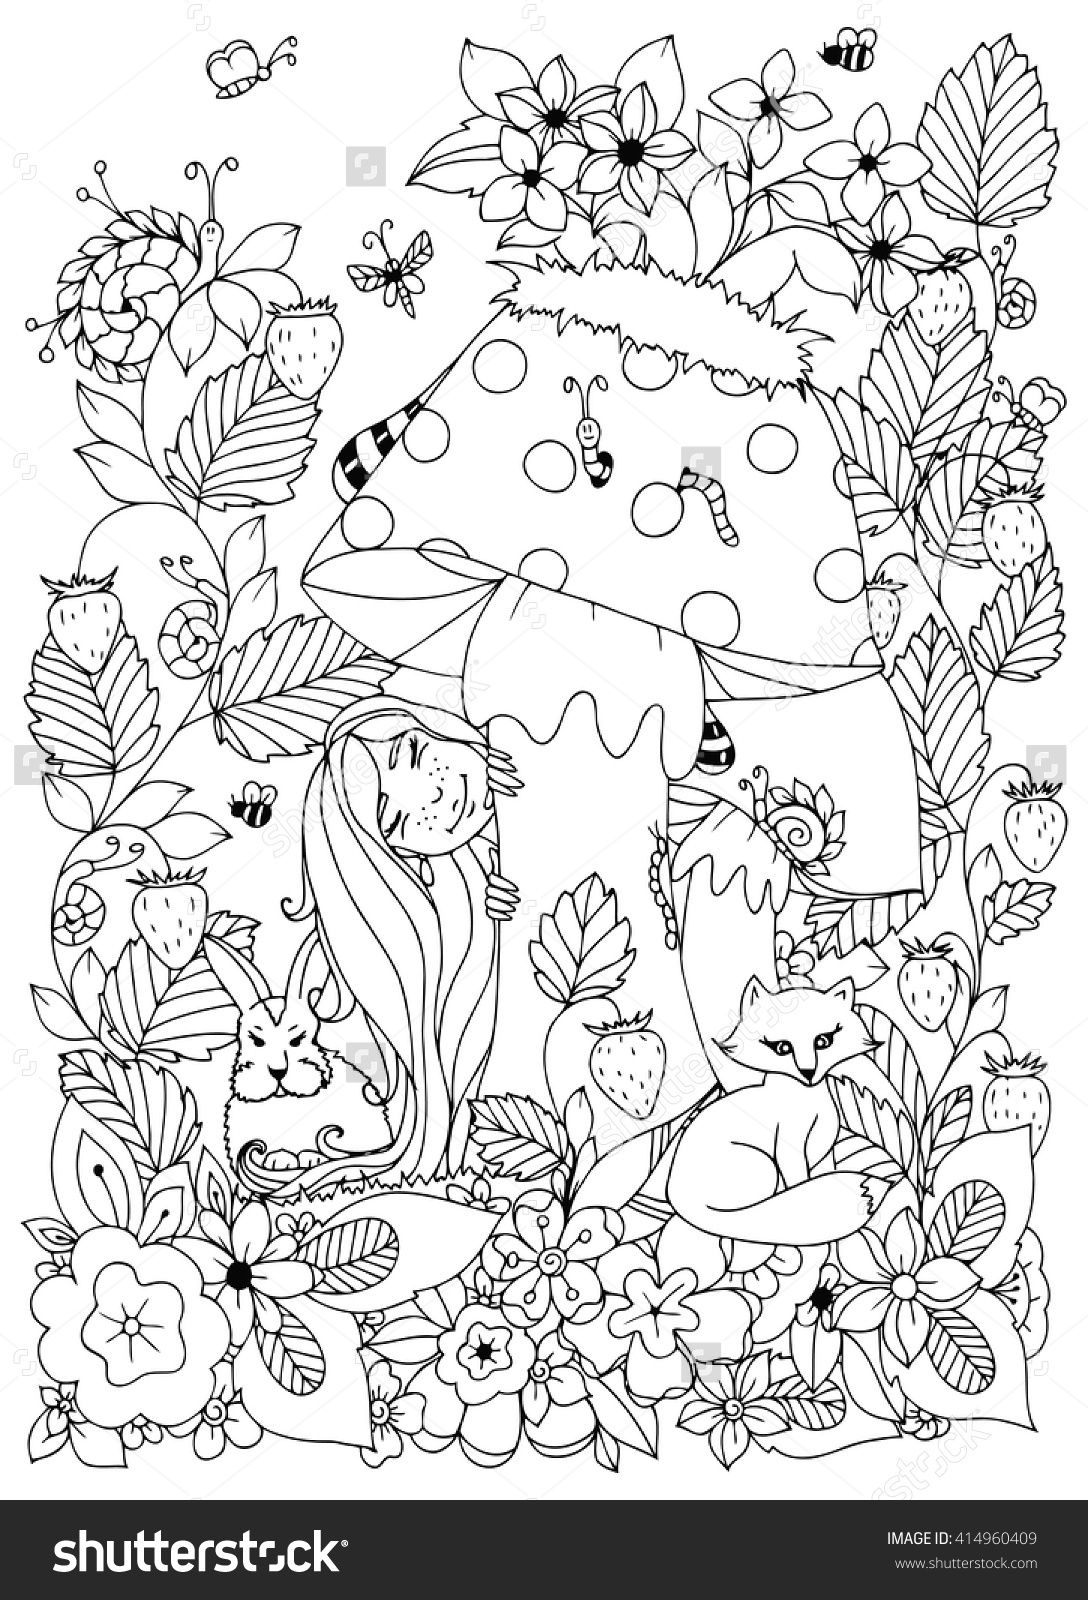 Vector Illustration Zen Tangle Girl With Freckles Hid Behind A Mushroom Doodle Flowers Forest Animals Coloring Book Anti Stress For Adults